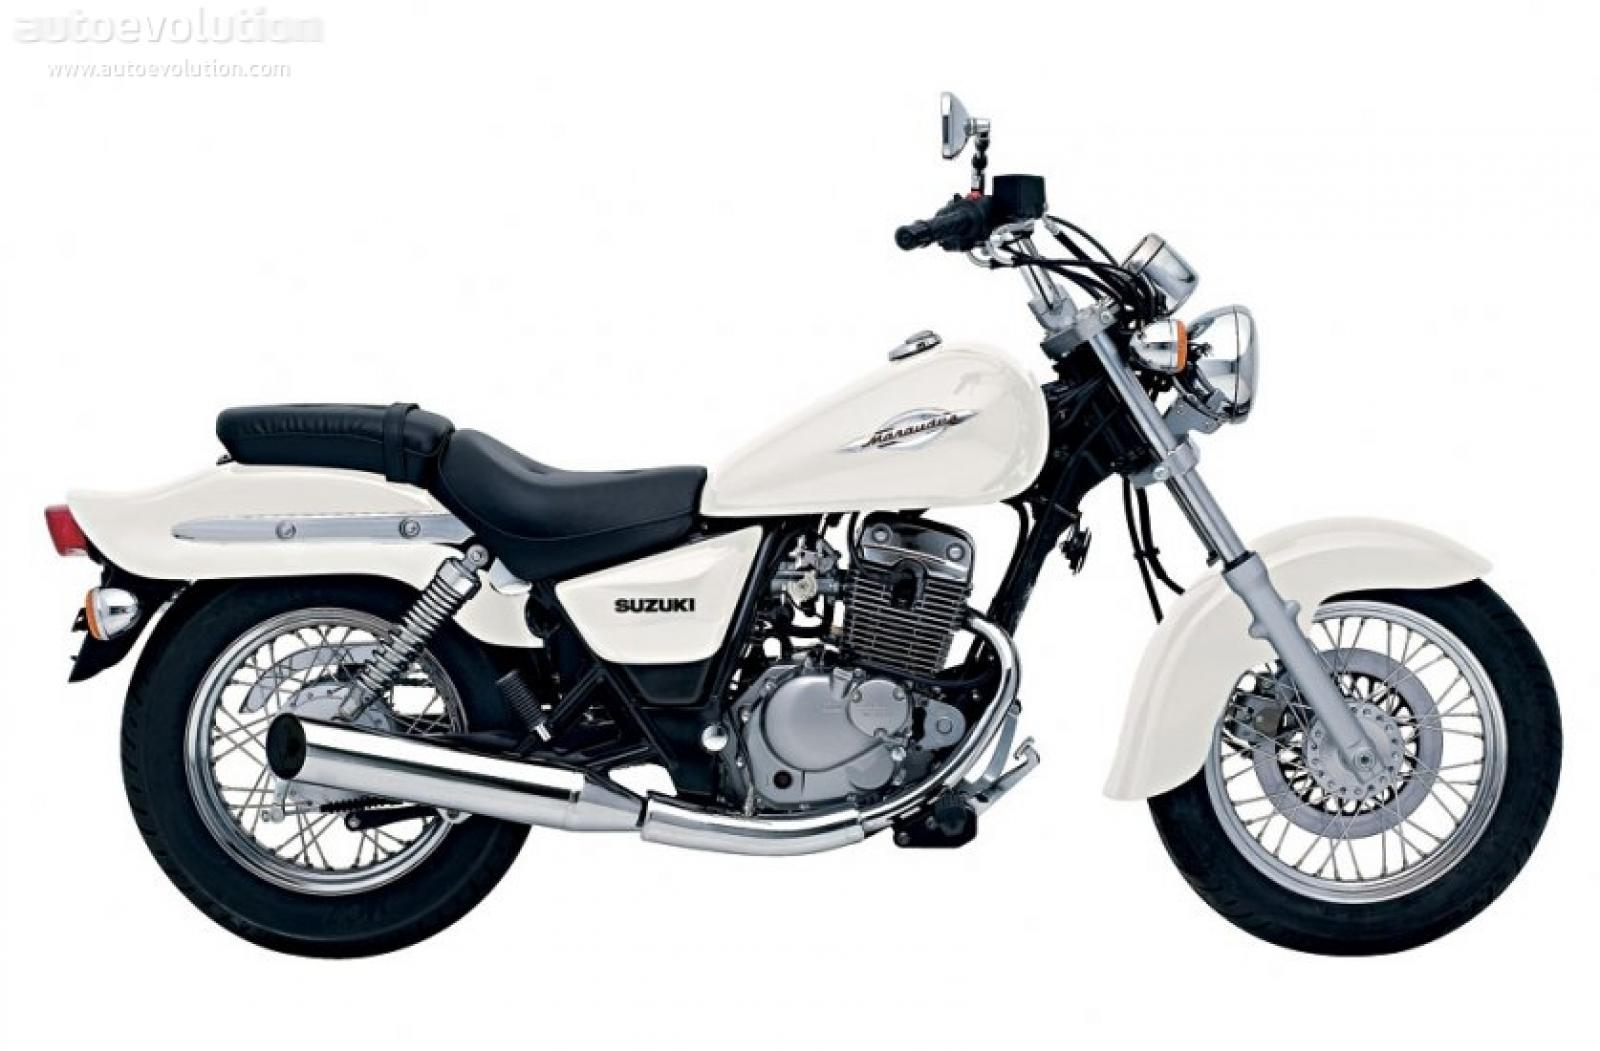 suzuki suzuki marauder 125 moto zombdrive com. Black Bedroom Furniture Sets. Home Design Ideas